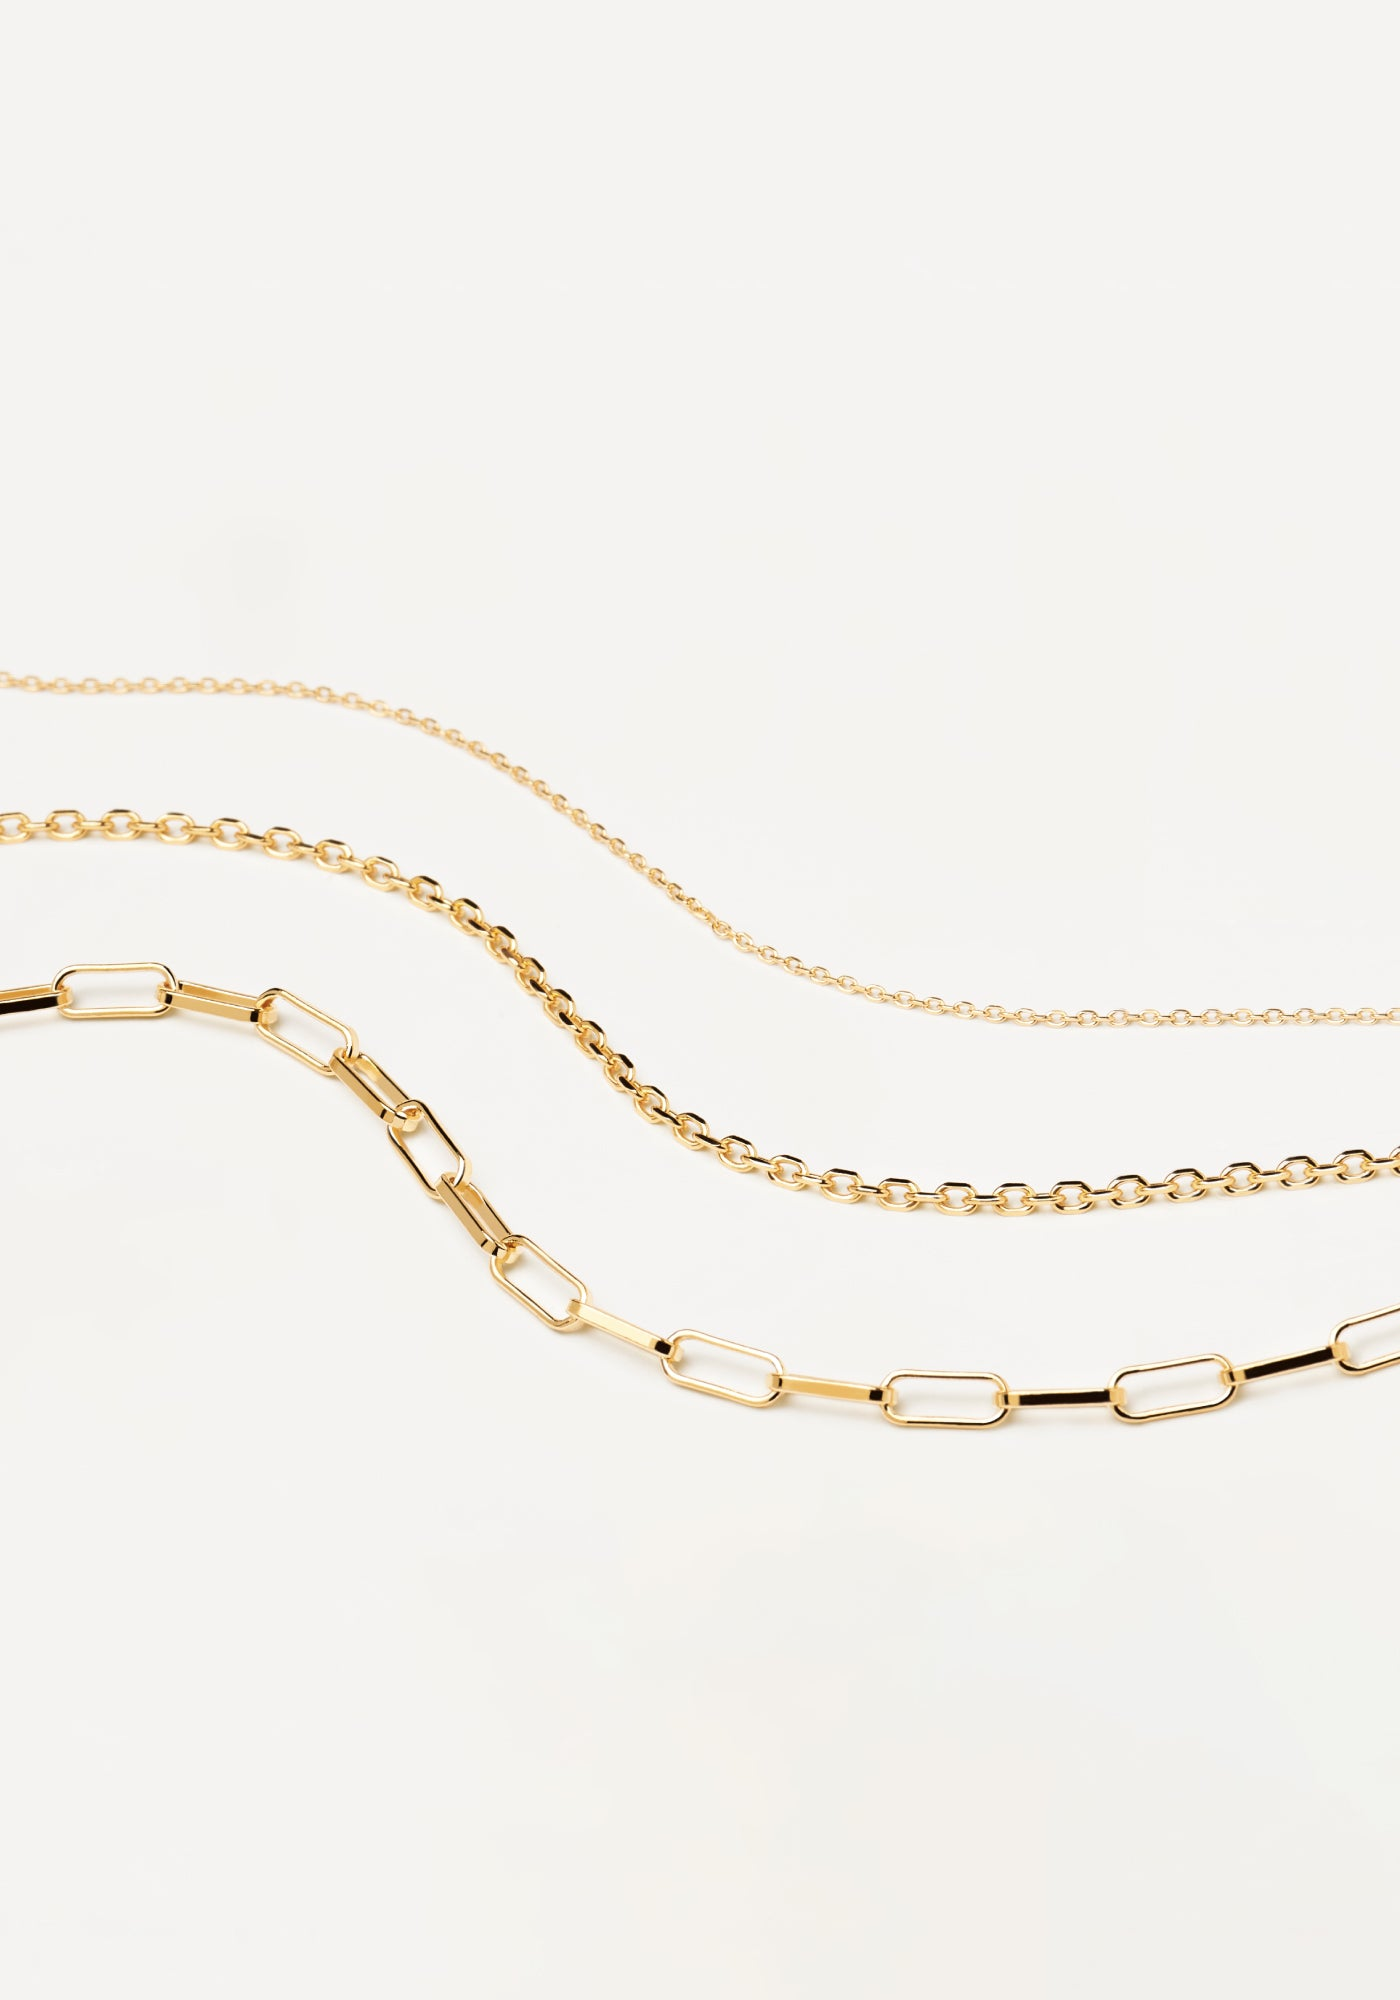 The desired tutorial: how to untangle your chains